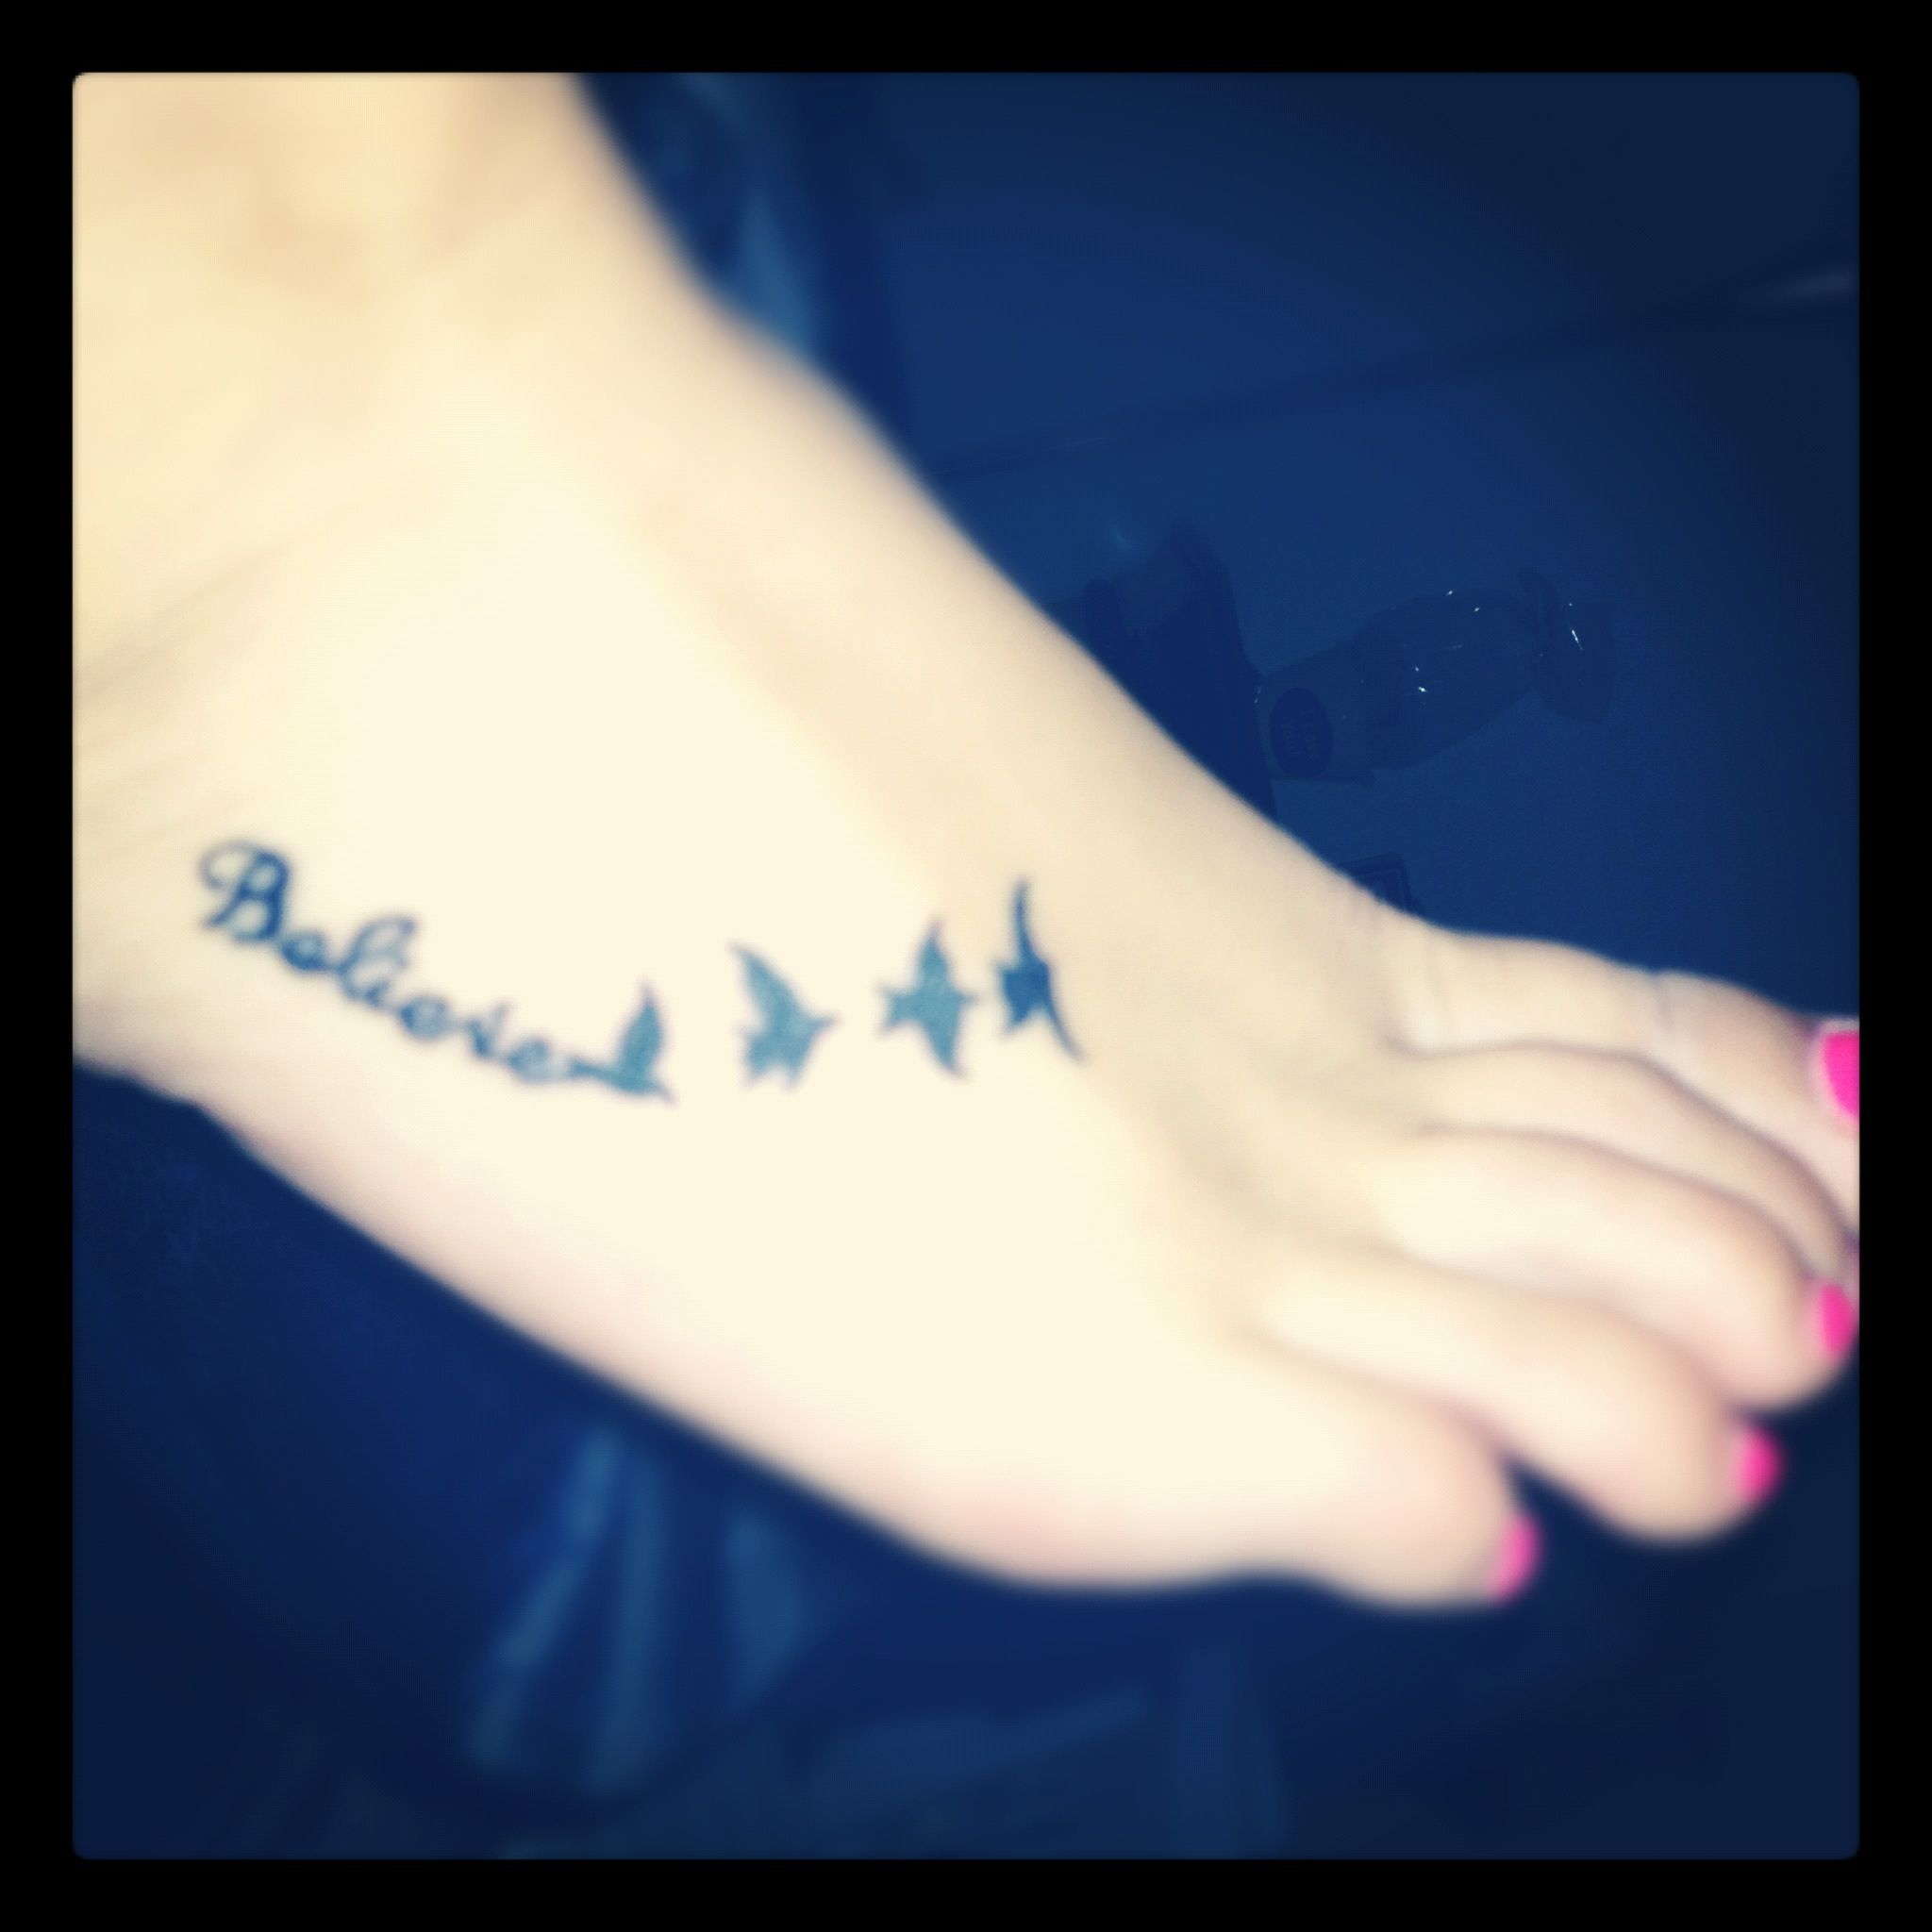 Believe Foot Tattoo For The Soul Tattoos Foot Tattoos Believe